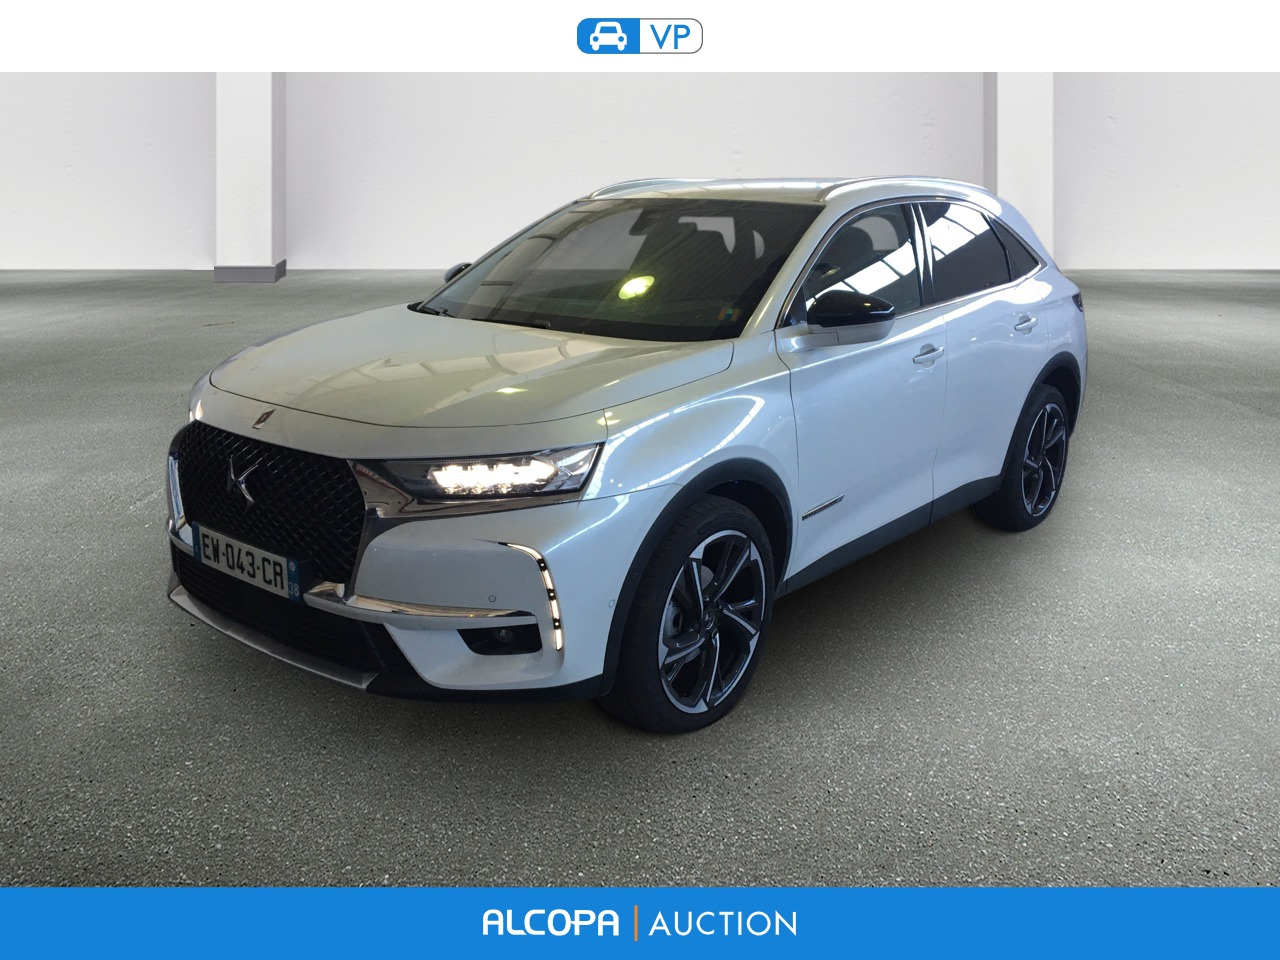 ds ds7 crossback ds7 crossback bluehdi 180 eat8 la premi re bva alcopa auction. Black Bedroom Furniture Sets. Home Design Ideas